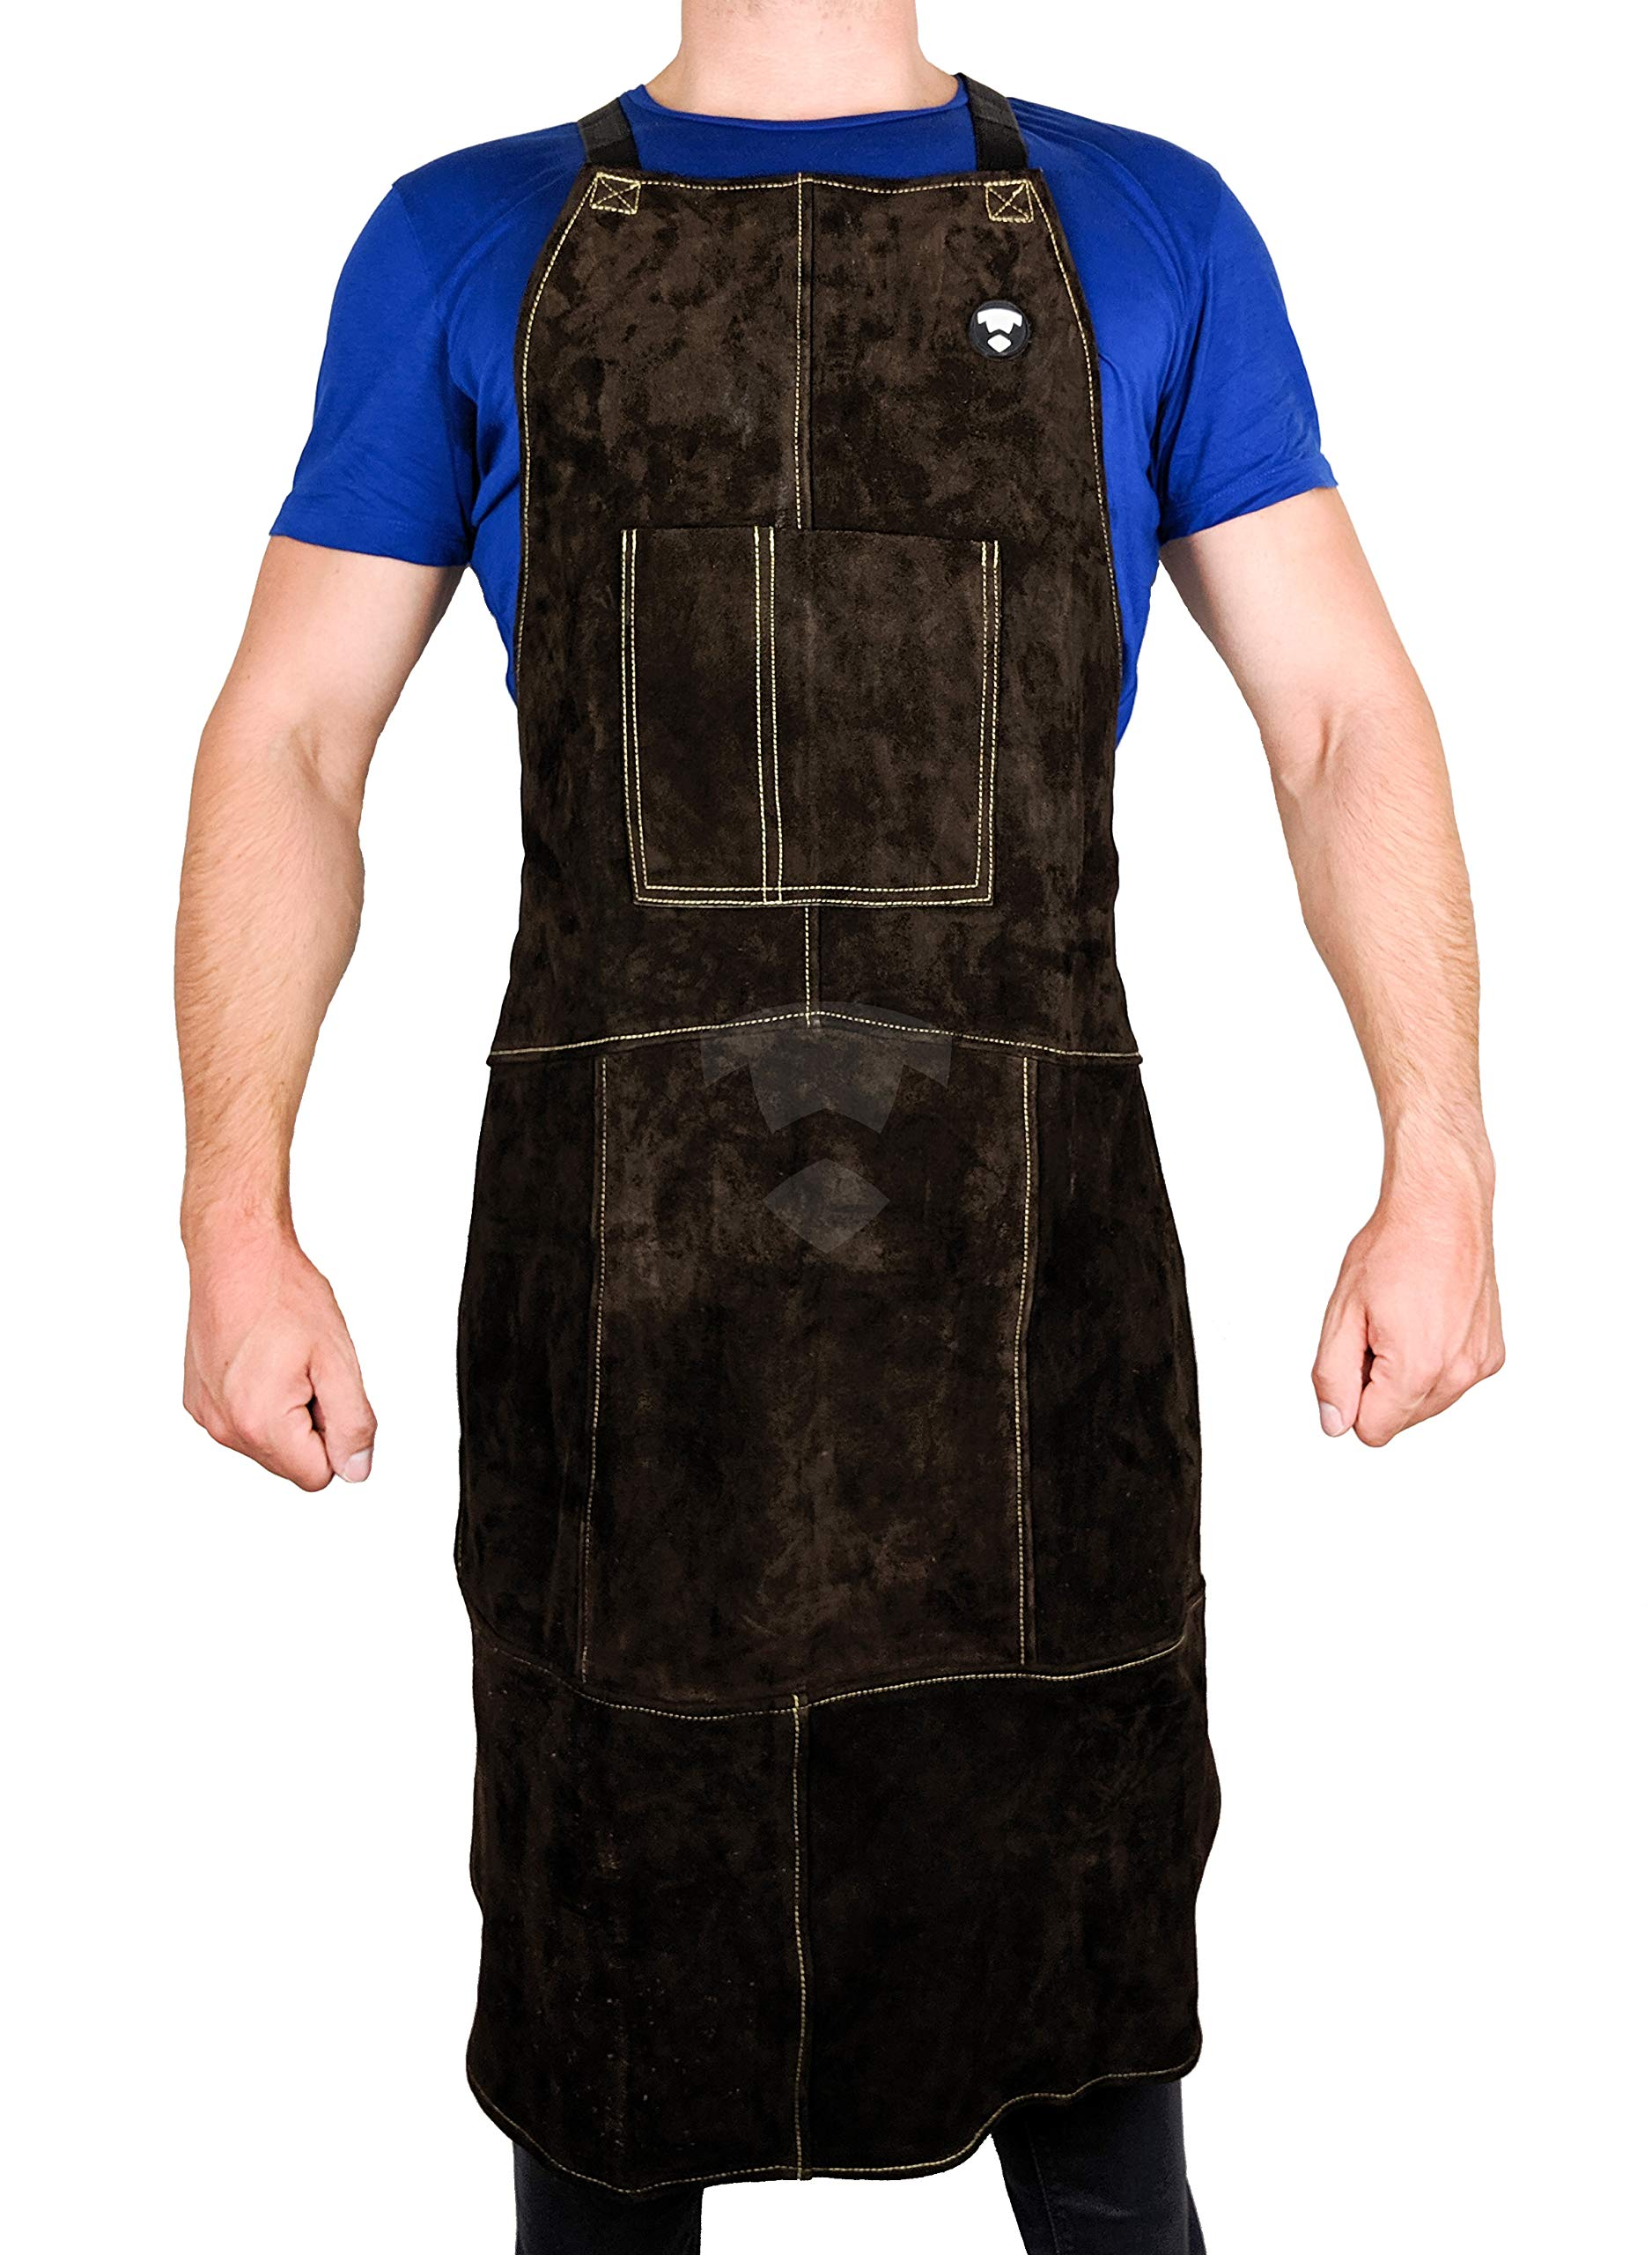 Waylander Leather Welding Apron Flame Resistant Heavy Duty Bib 40'' Dark Brown with Adjustable Cross Back Apron Straps and Pocket for Men and Women